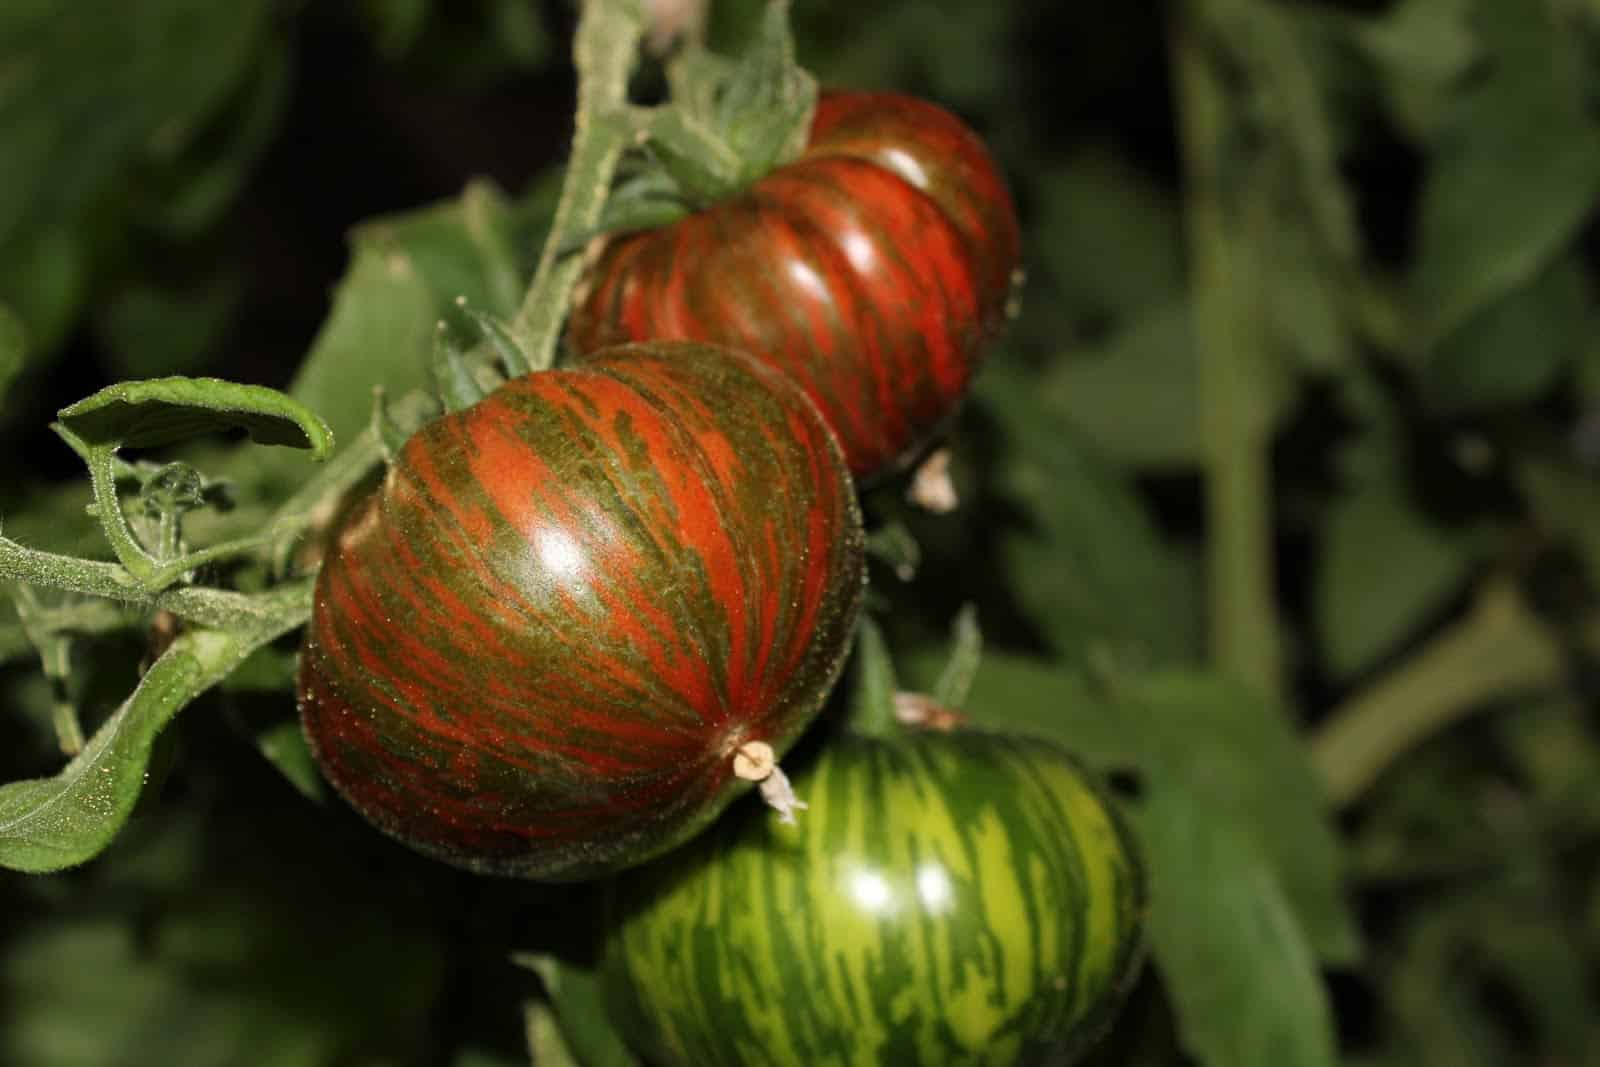 Chocolate Striped tomatoes on the vine